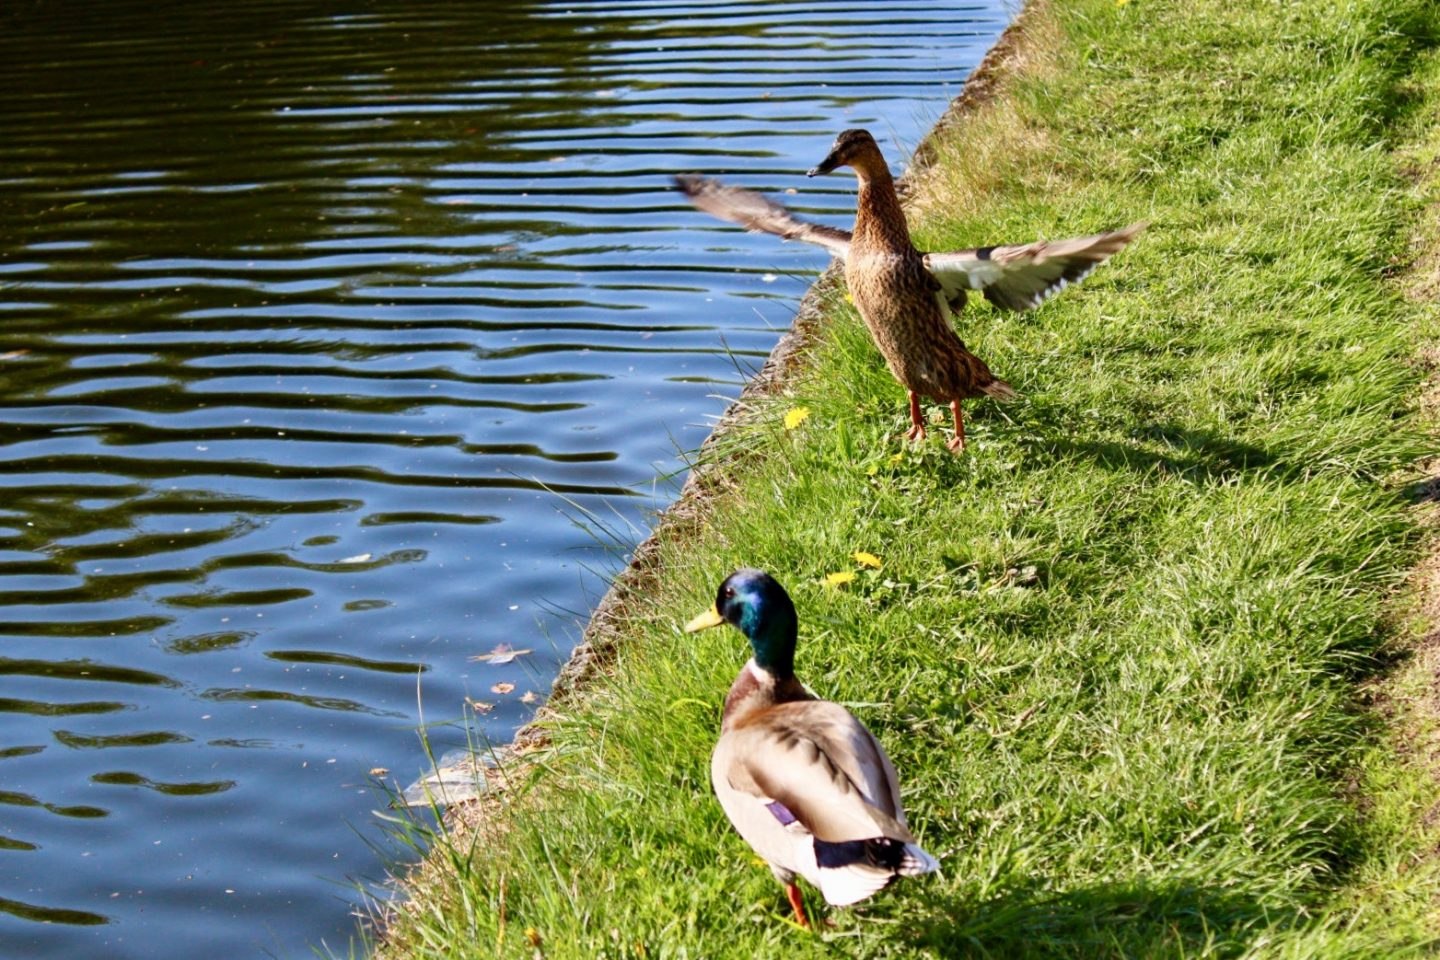 Daily lockdown exercise walk: two ducks by the canal, one with it's wings in motion